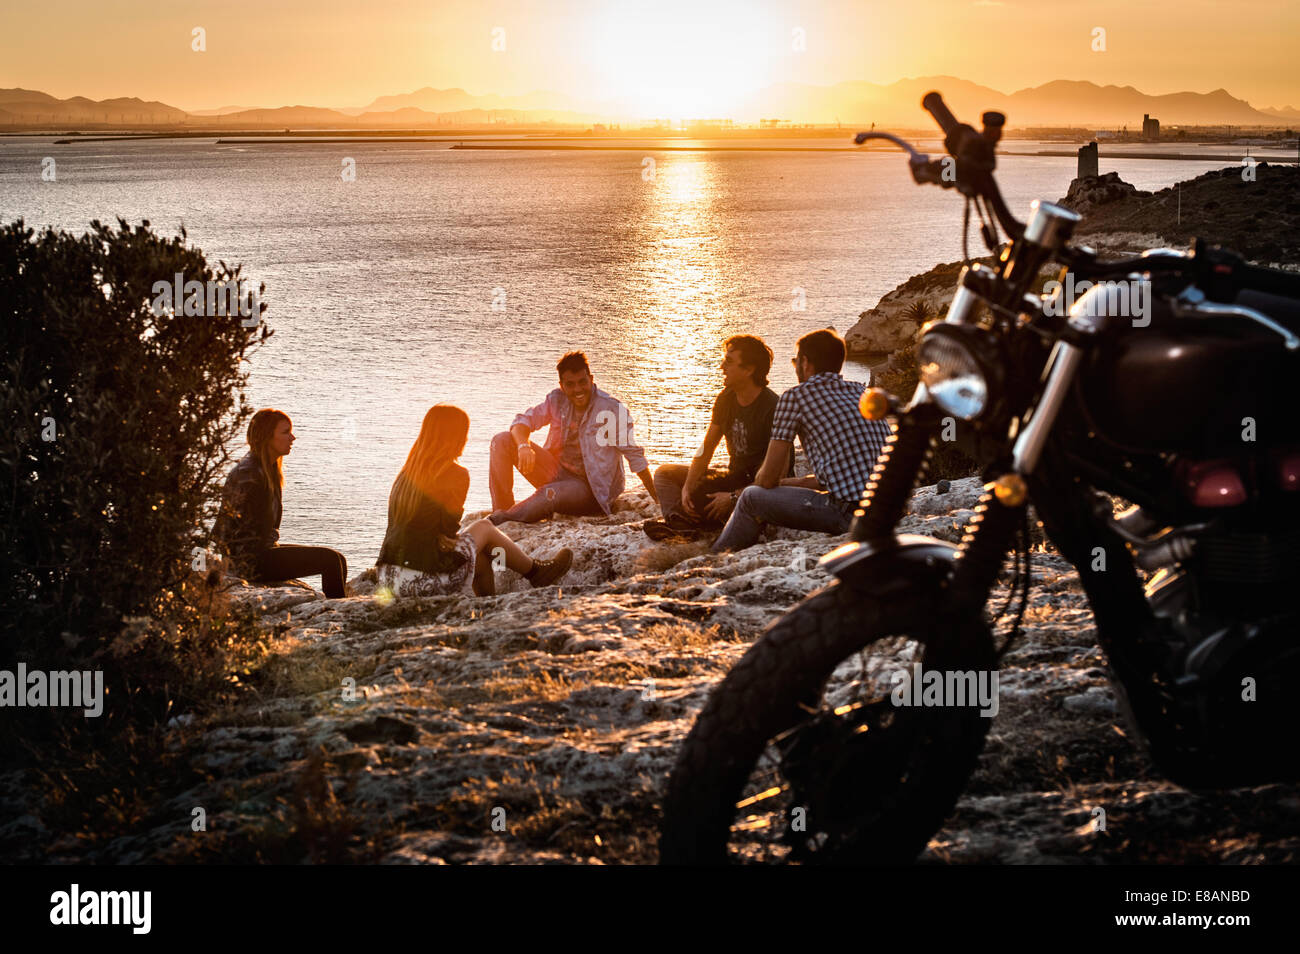 Five motorcycling friends taking a break on coast at sunset, Cagliari, Sardinia, Italy - Stock Image